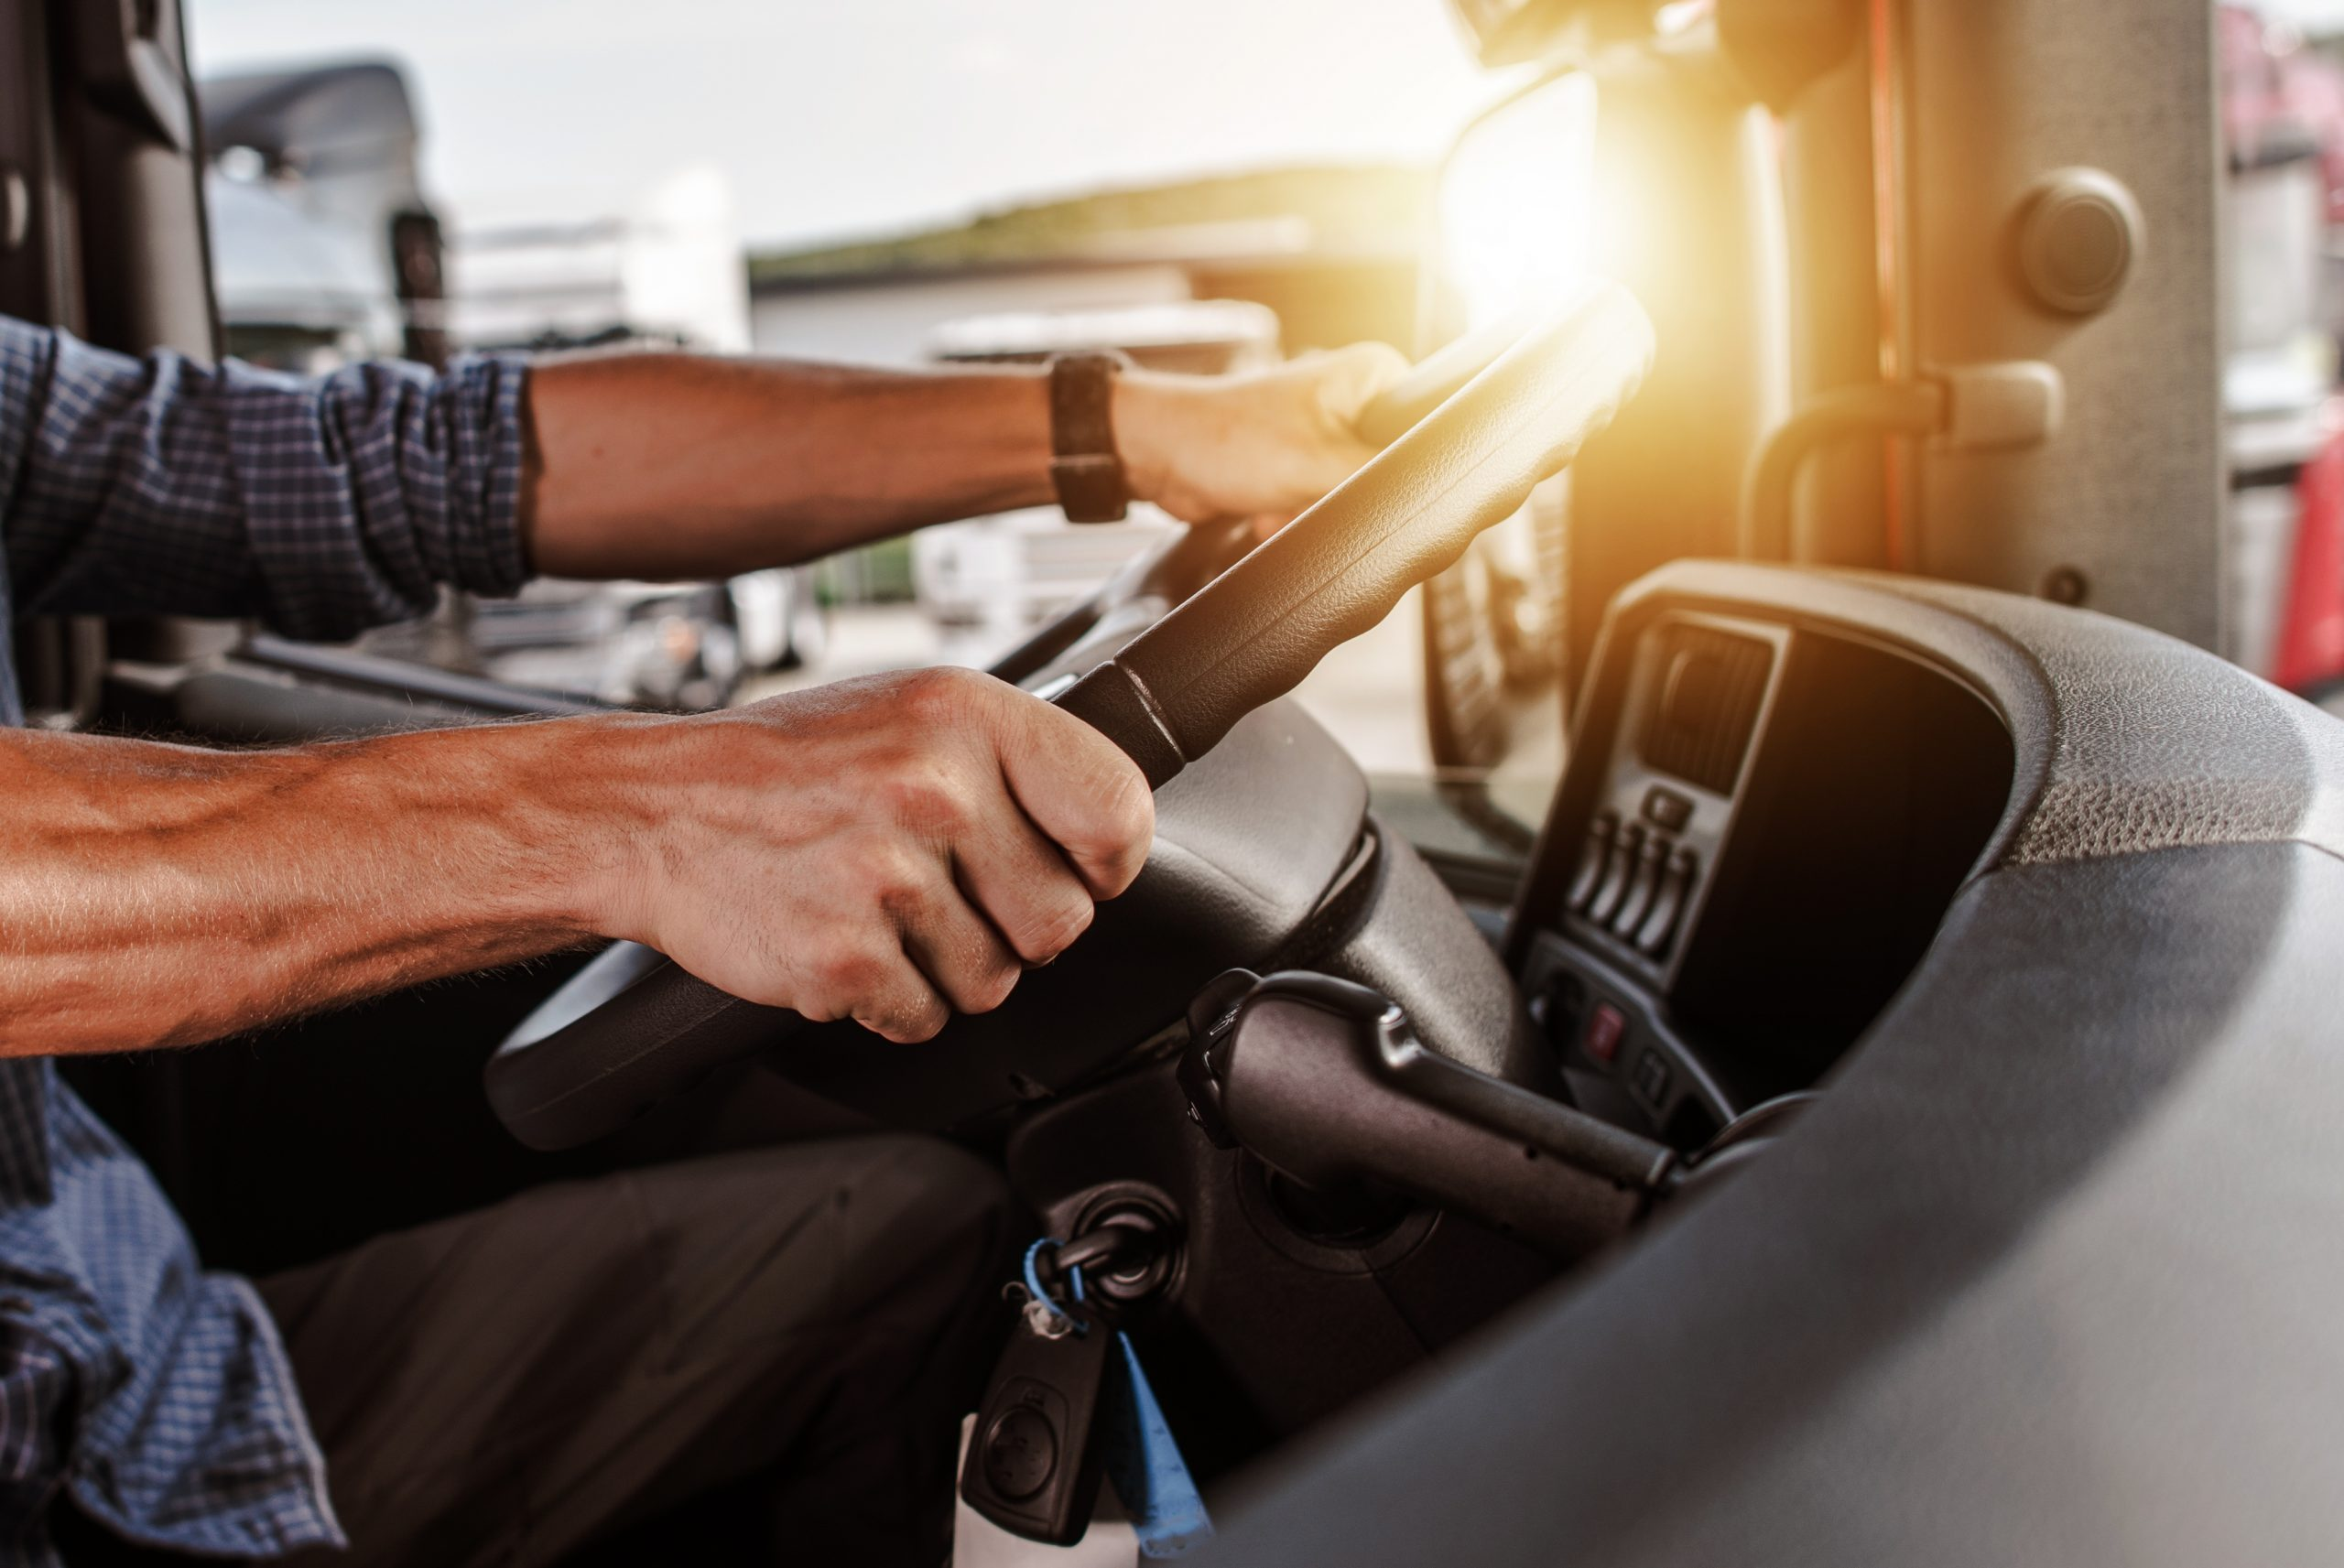 Truck driver hands on steering wheel   close